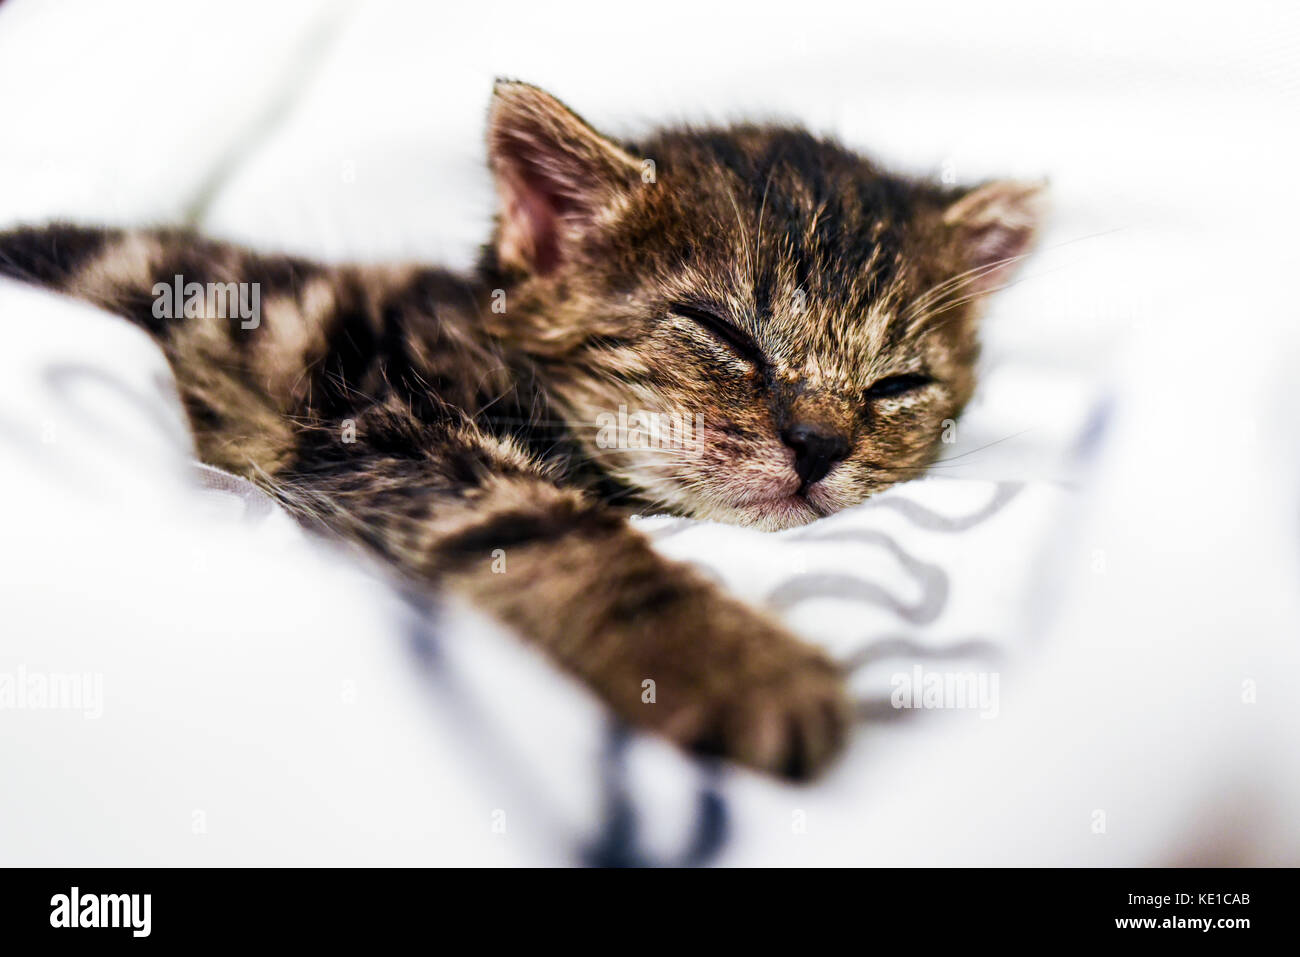 A cute little kitten sleeping in a blanket at home. - Stock Image